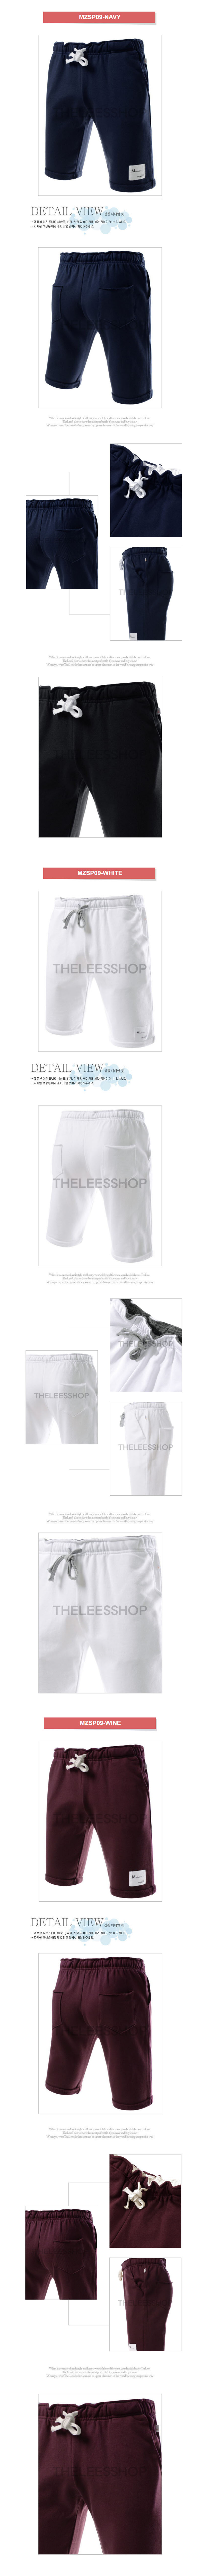 [ KOOLLOOK ] [KoolLook] Logo Print Patch Training Shorts MZSP09